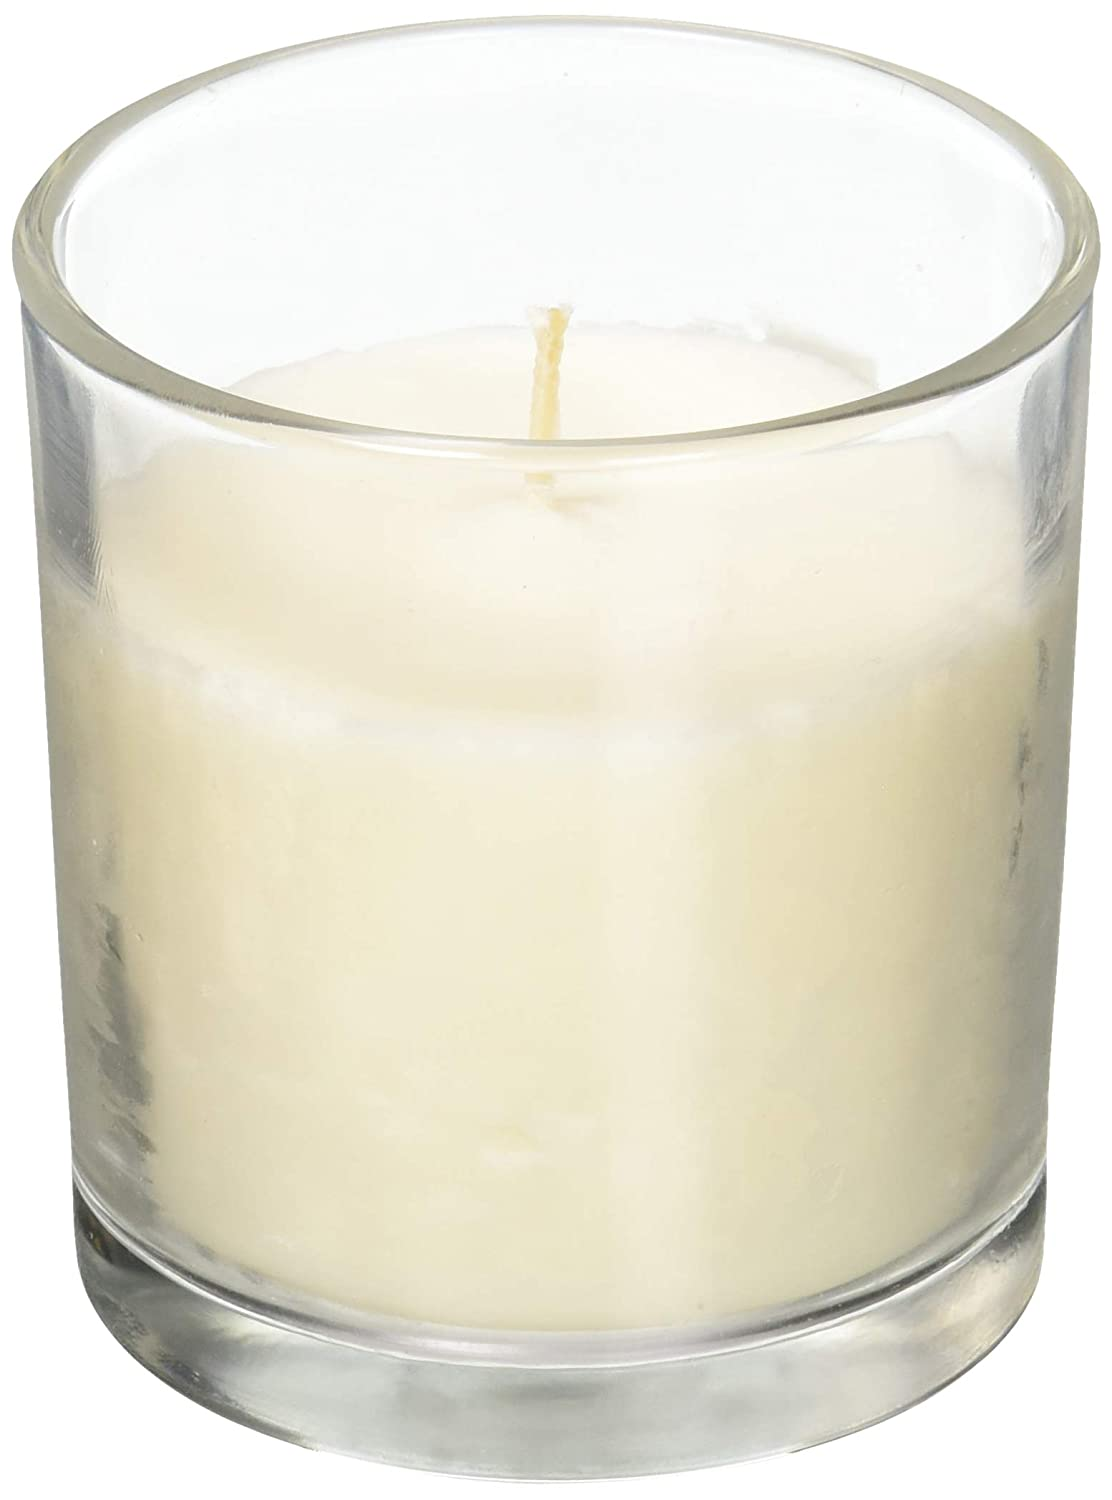 Amazon Com Air Fresh Candle By Old Williamsburgh Fresh Linen Scent Advanced Air Freshening Paraffin Grade Wax Natural Fiber Wick Long Burning Glass Jar 4 Oz Home Kitchen